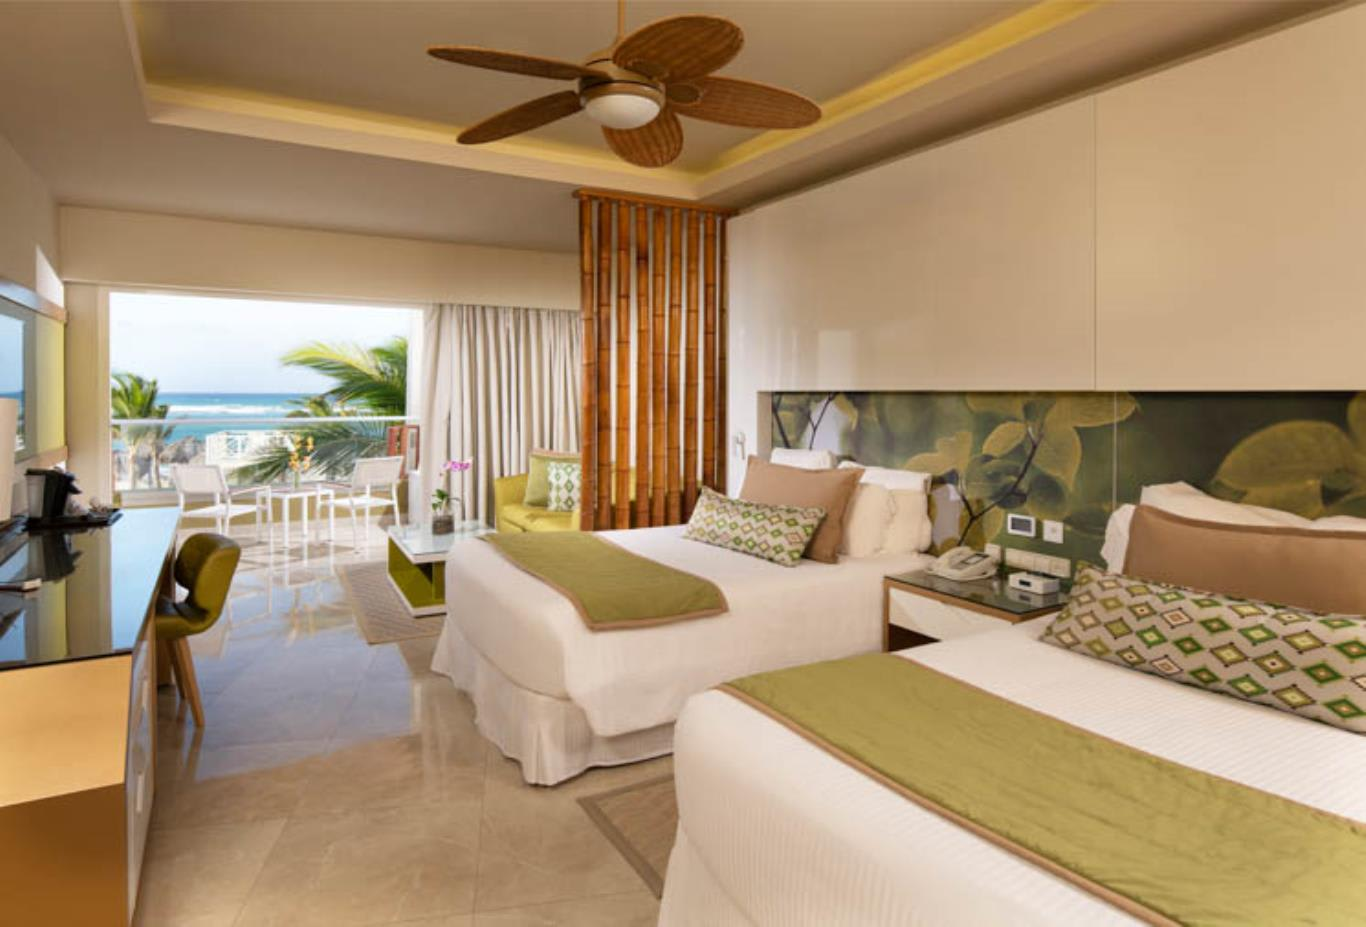 Preferred Club Junior Suite with private pool beds